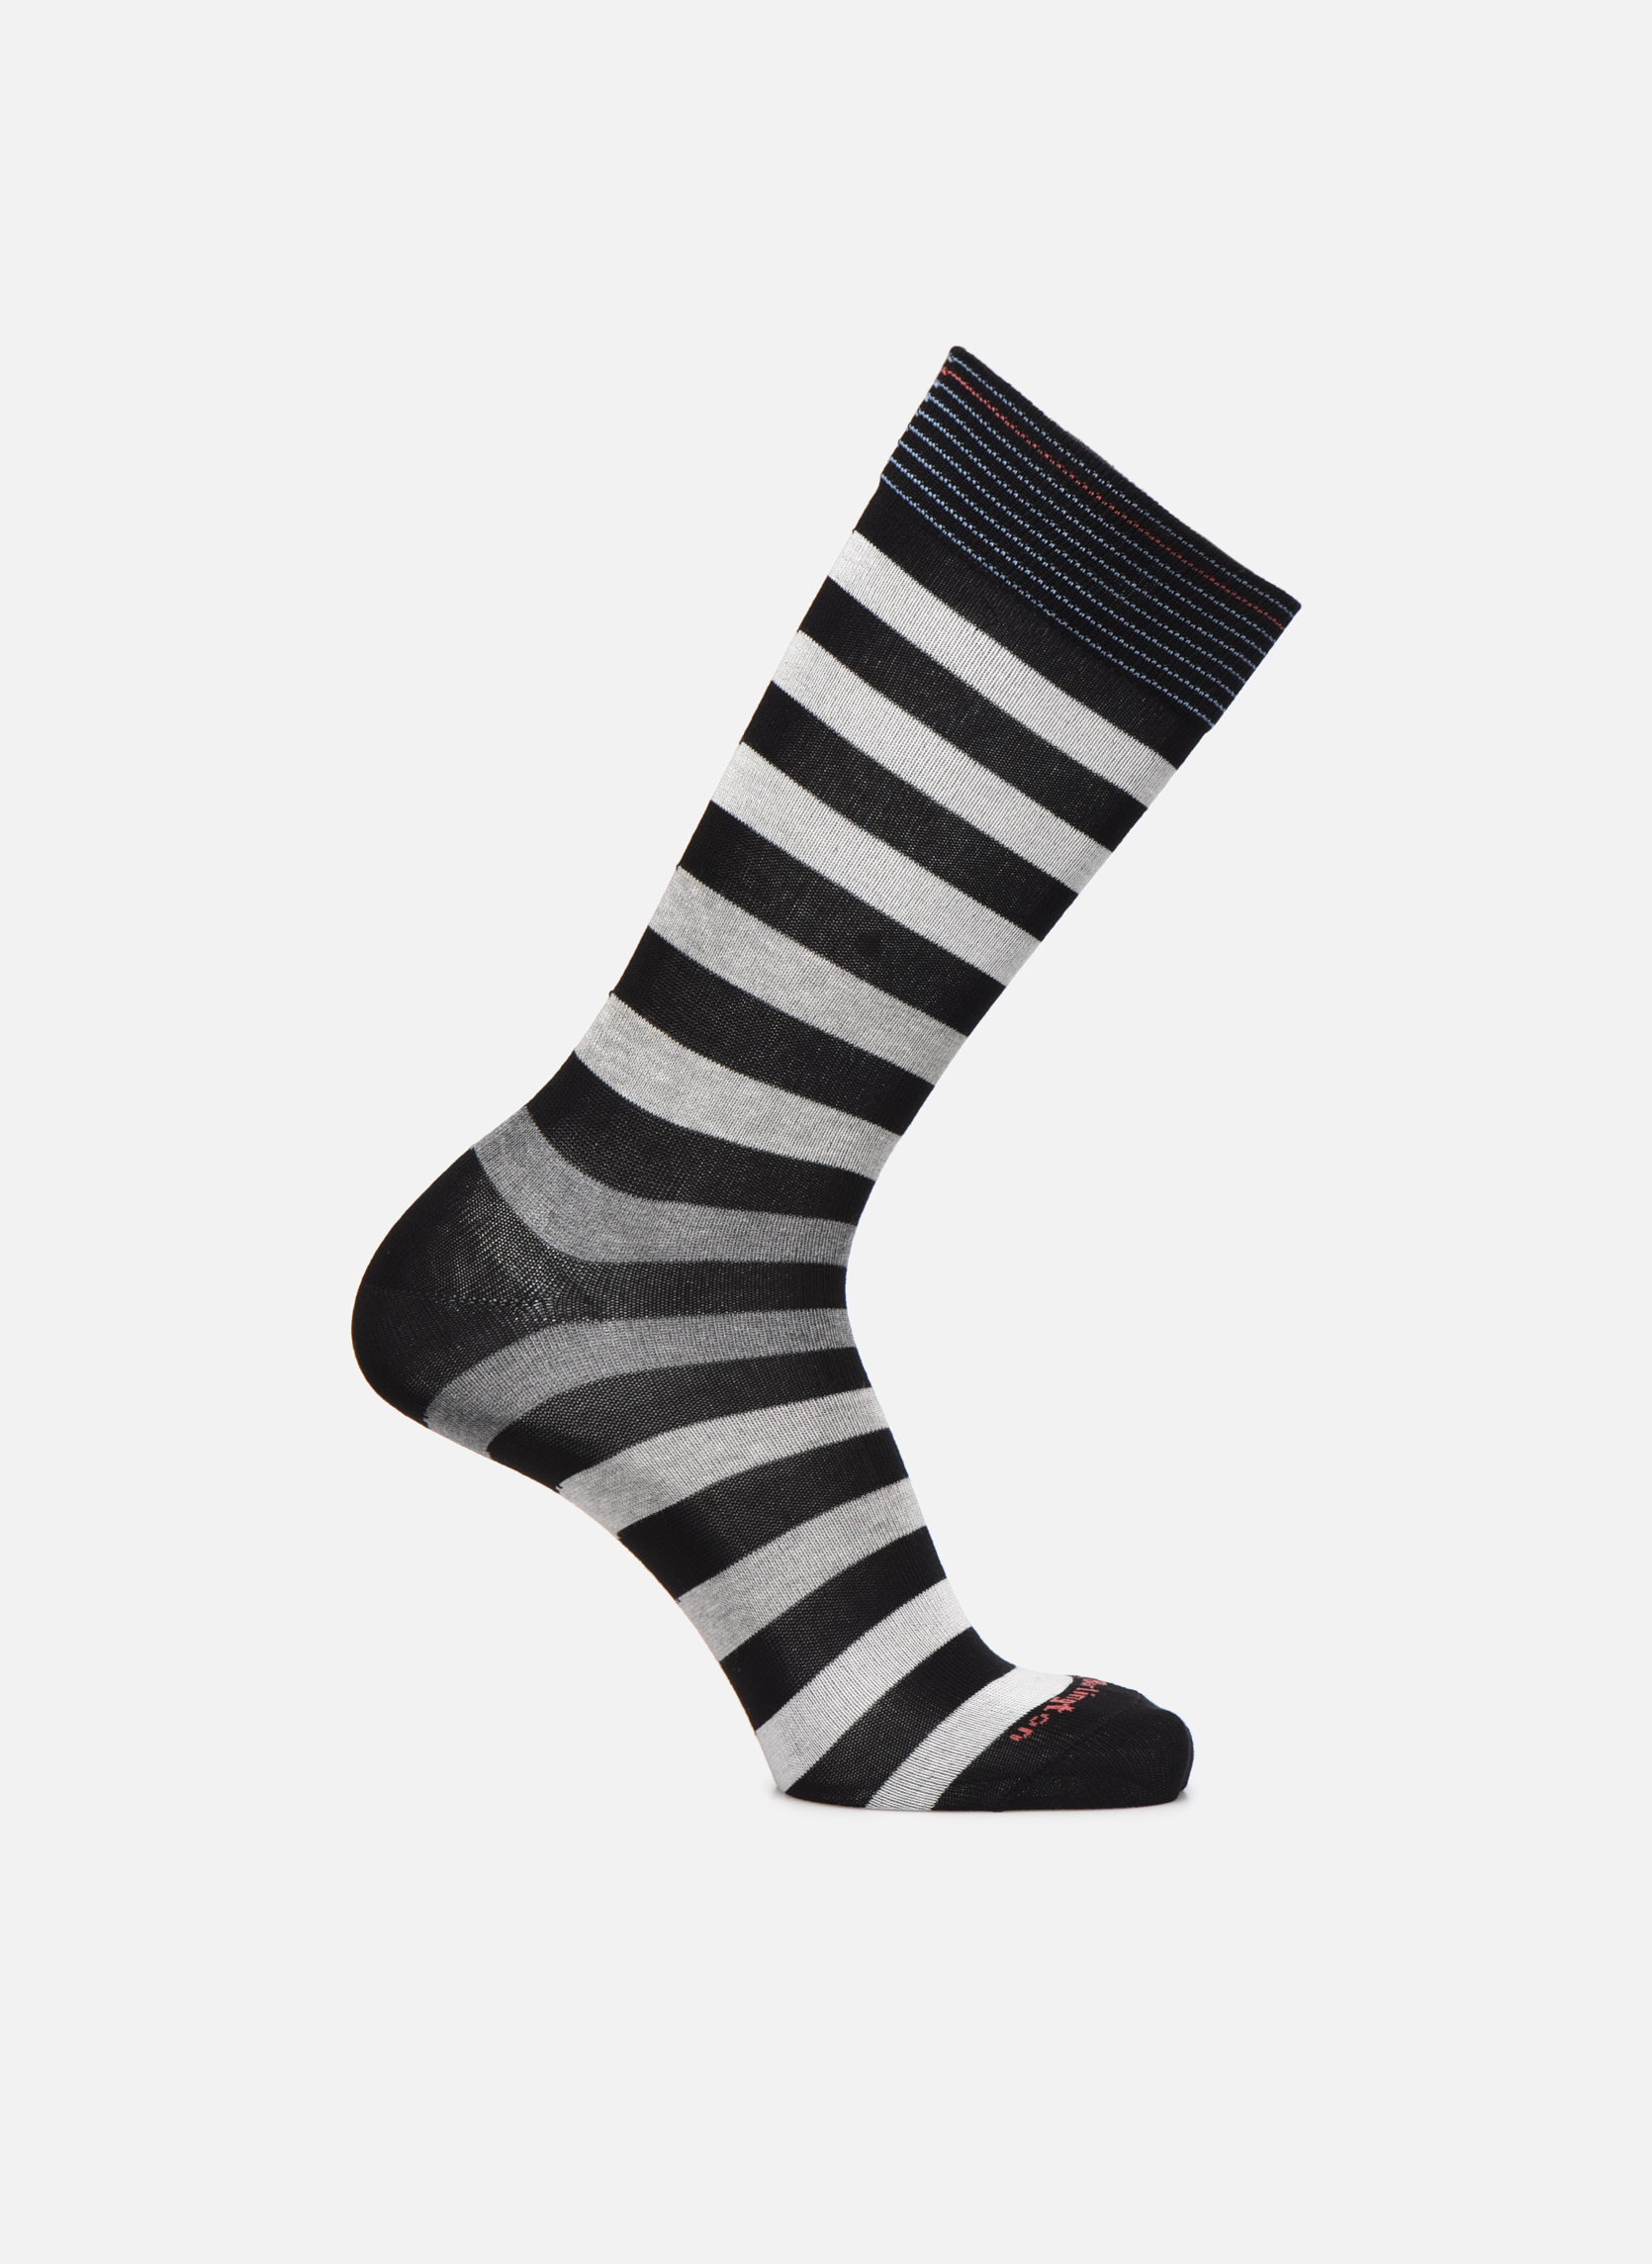 Chaussettes RAYEES 3000 noir